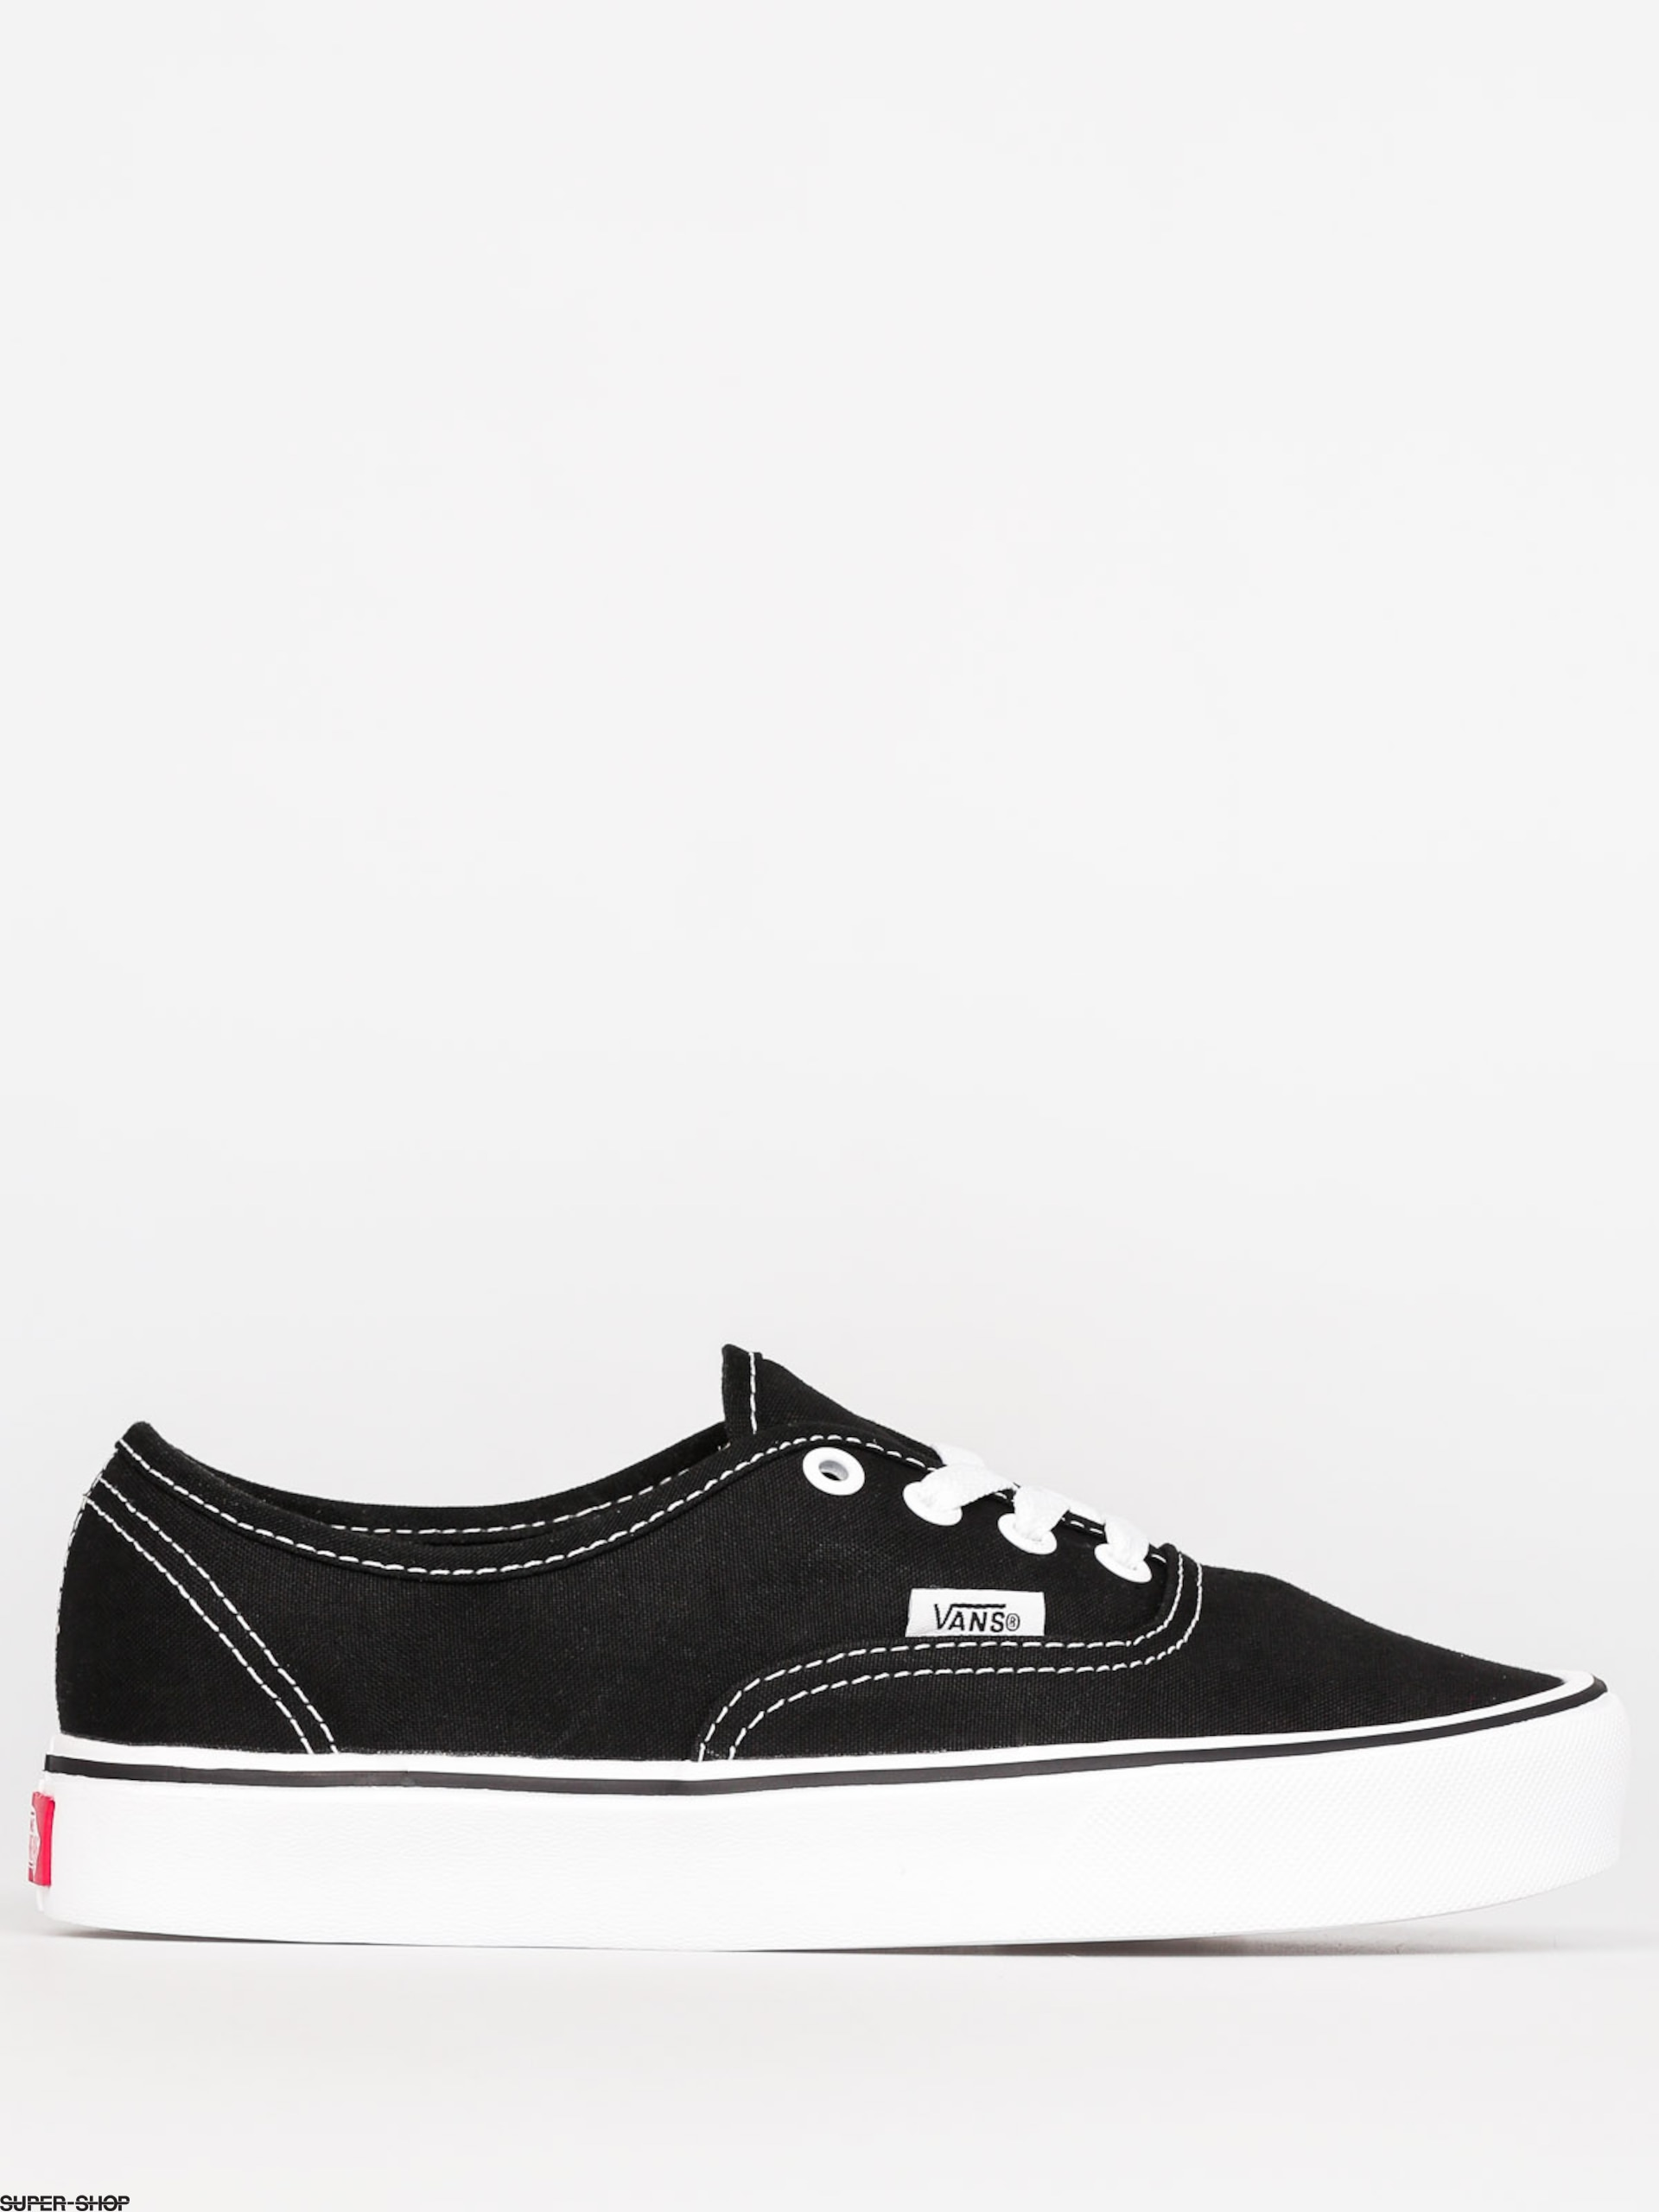 Authentic Vans Vans Authentic Schuhe Litecanvasblackwhite Schuhe sQxdothCBr